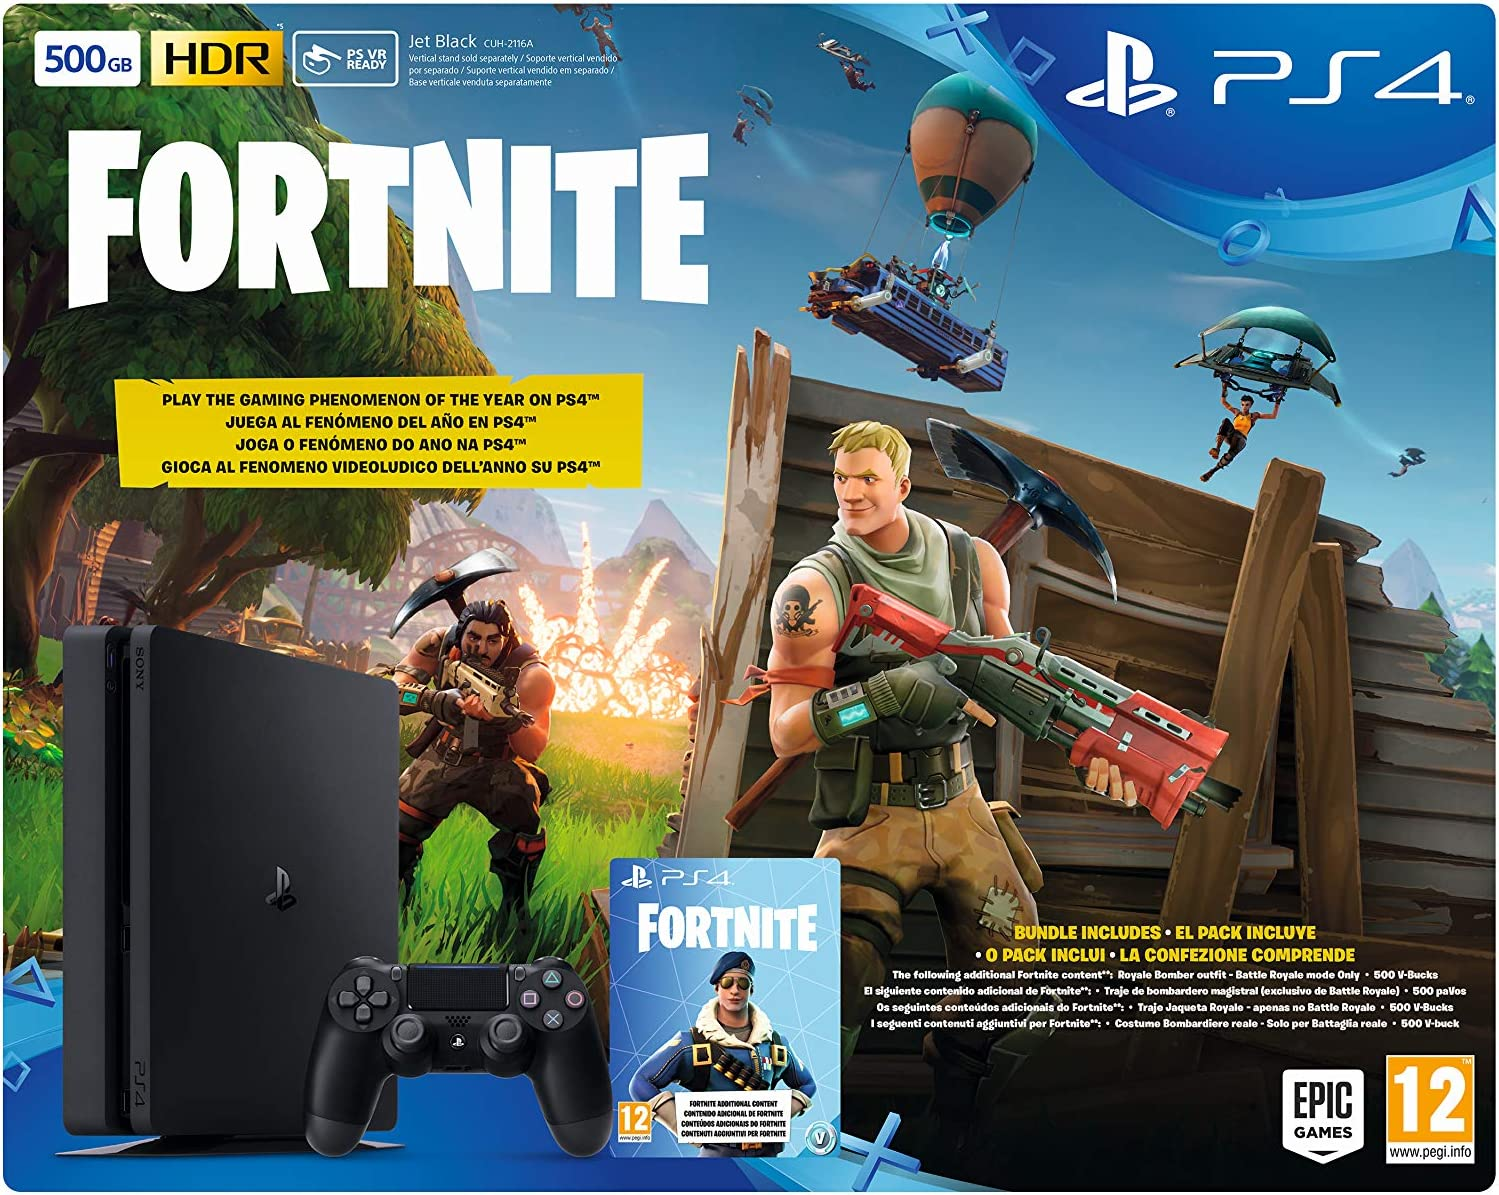 Sony PlayStation 4 + Fortnite Voucher Negro 500 GB Wifi ...